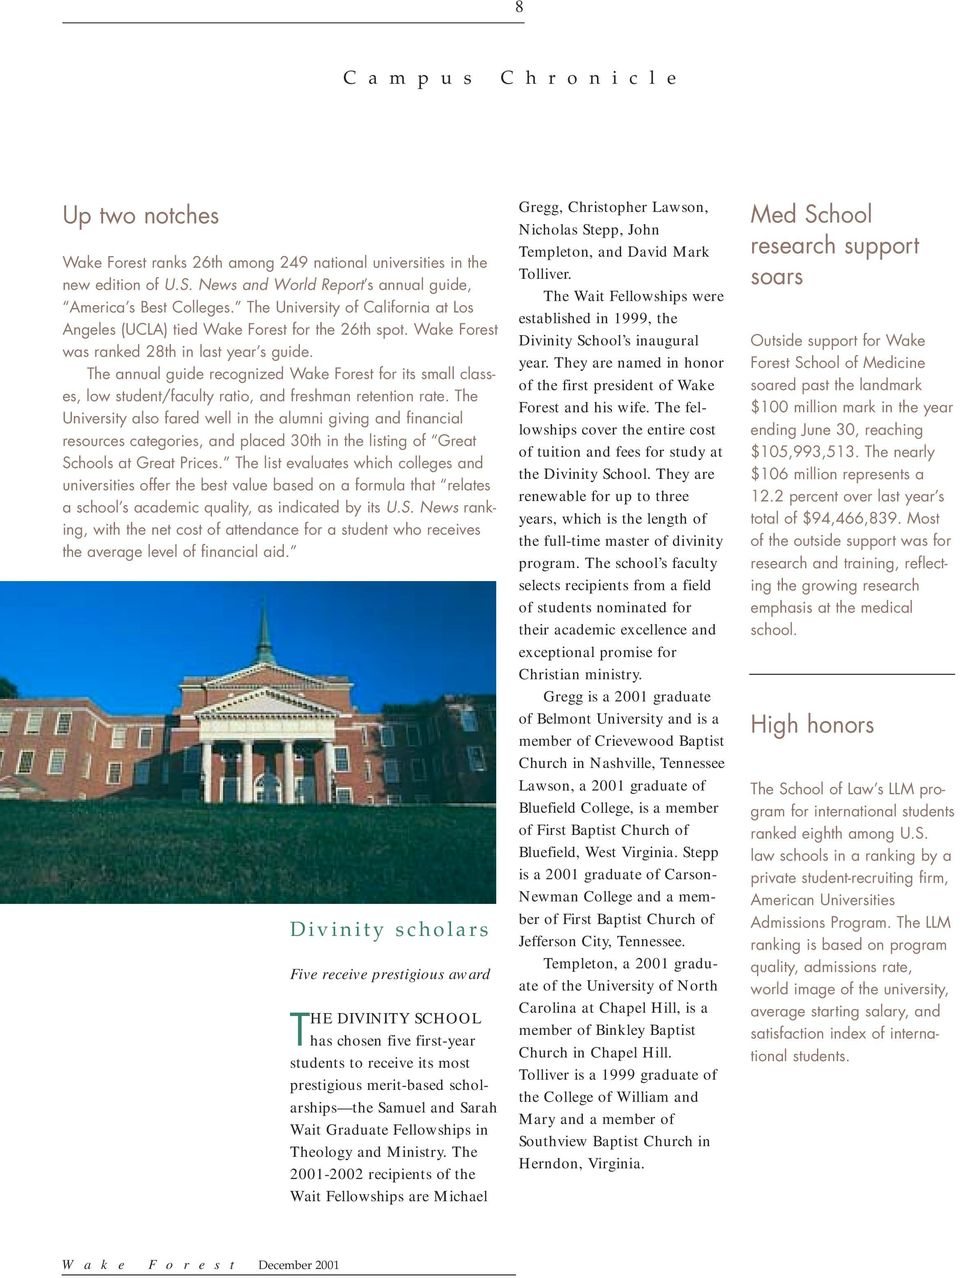 The annual guide recognized Wake Forest for its small classes, low student/faculty ratio, and freshman retention rate.